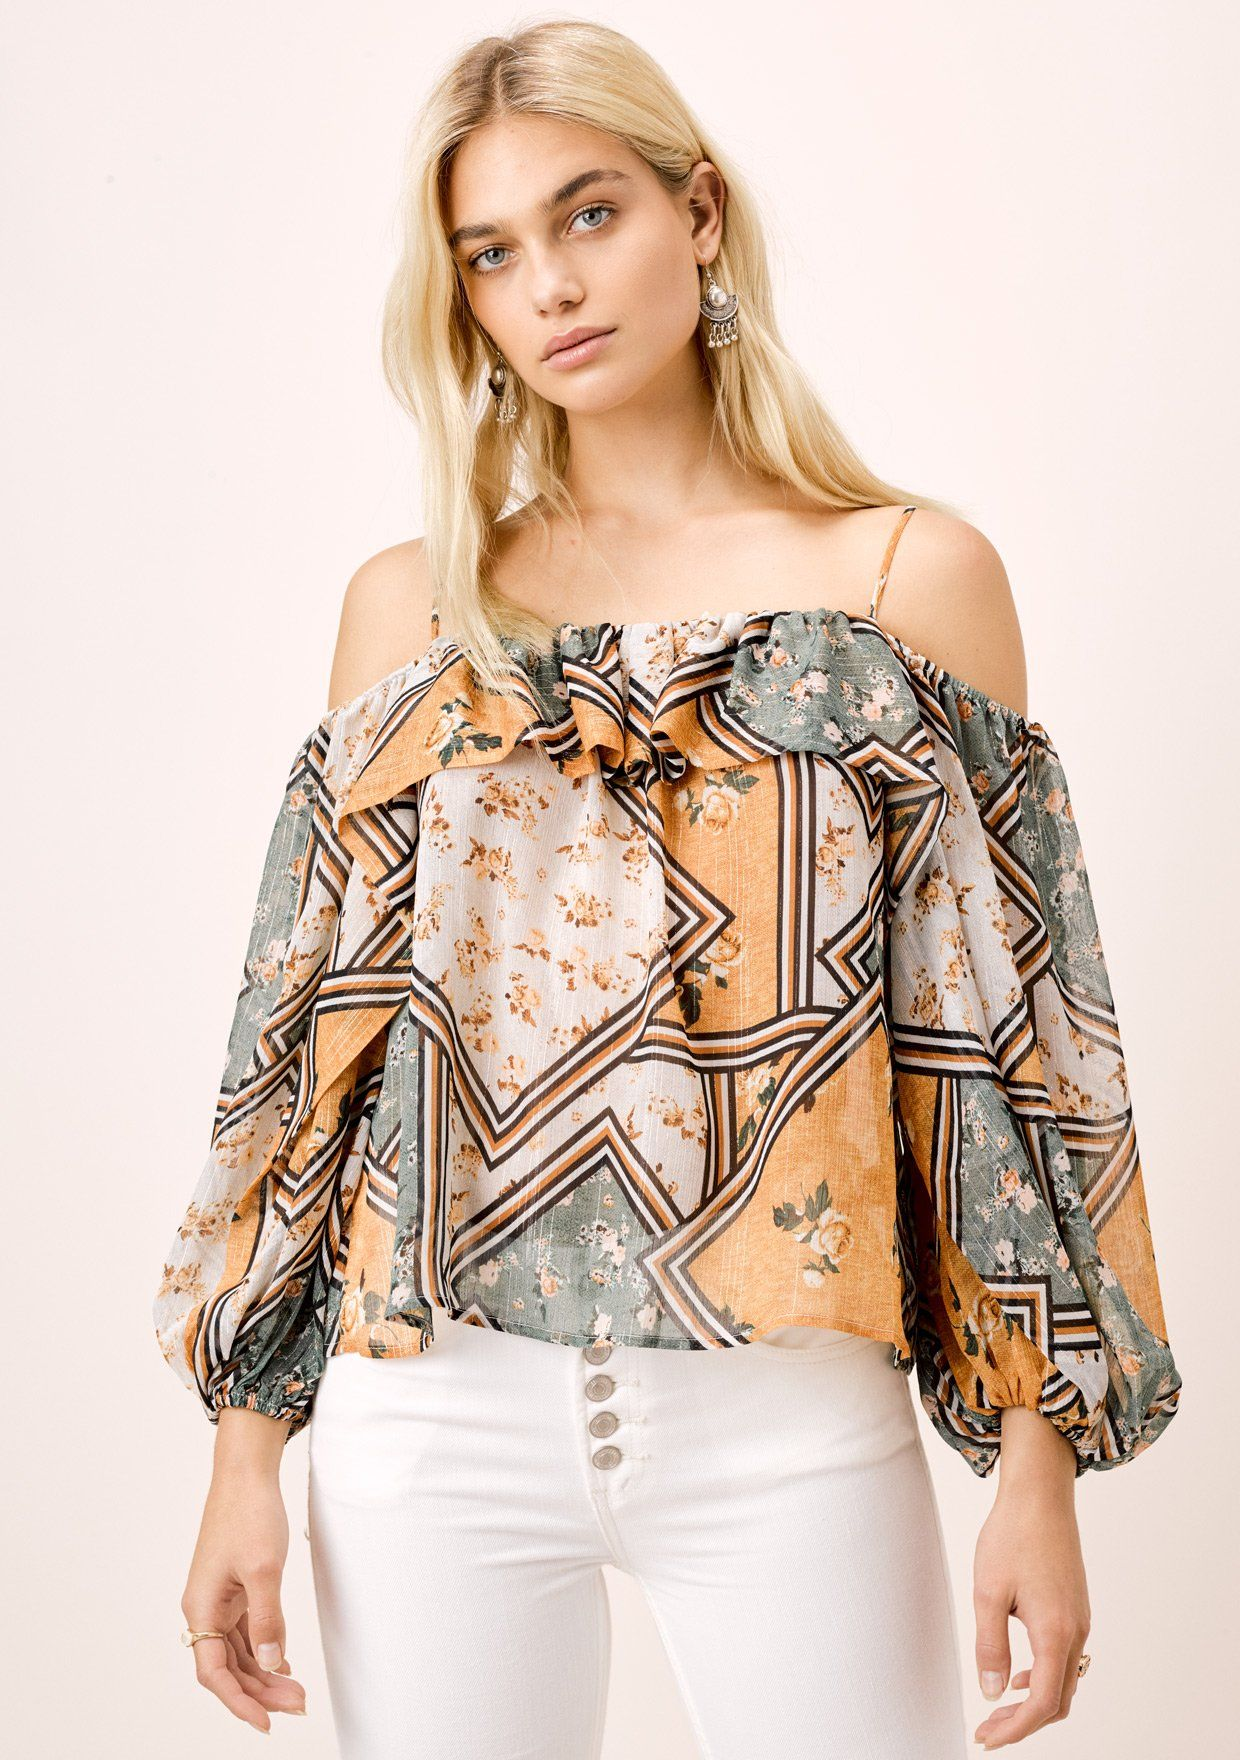 [Color: Retro/Gold] Lovestitch patchwork floral scarf printed, volume sleeve cold shoulder blouse.